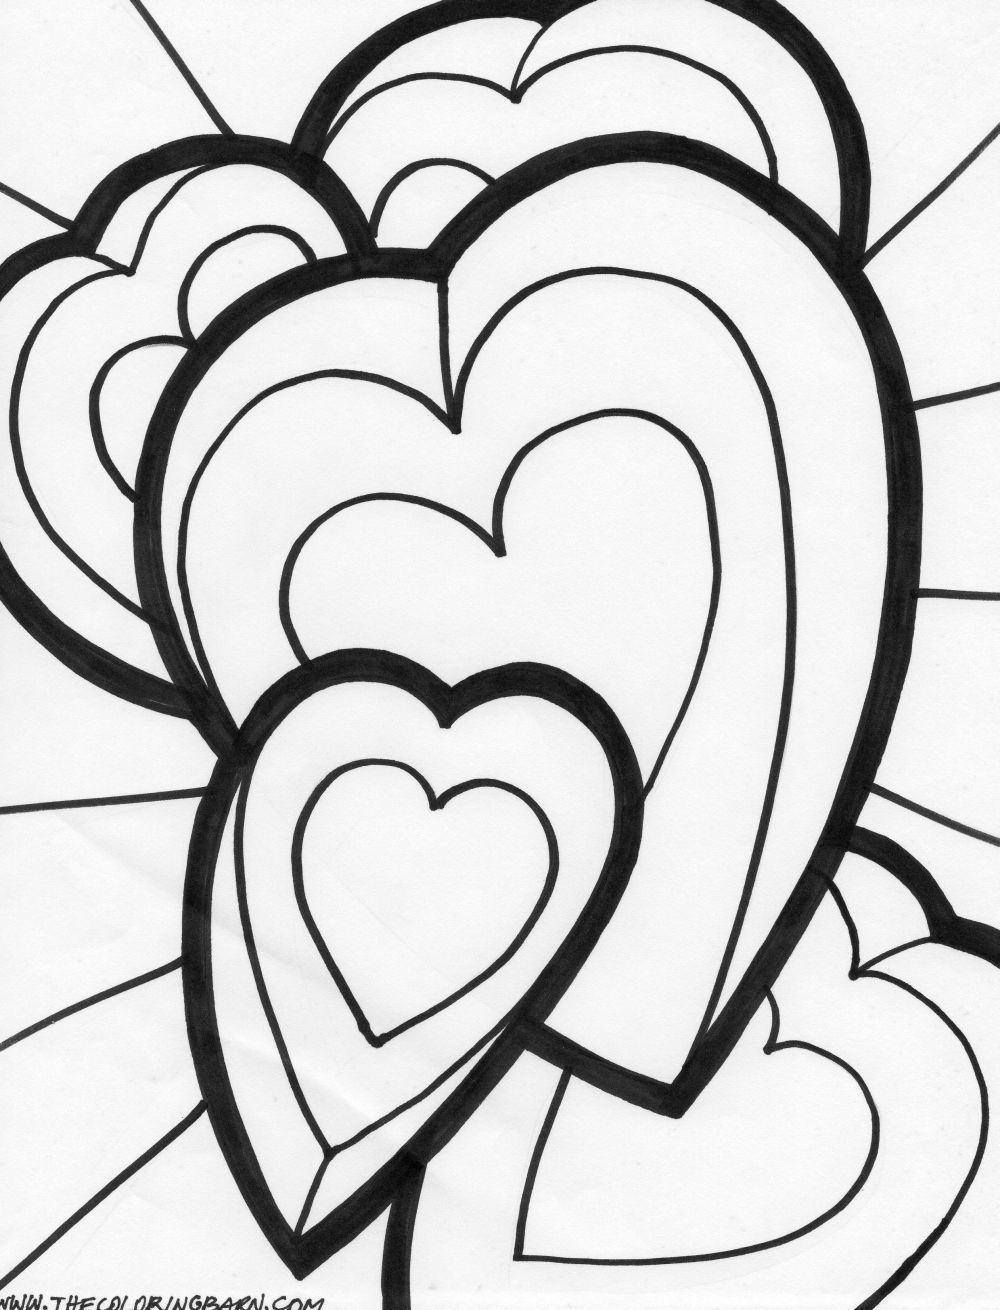 Valentines Day Coloring Pages Heart Coloring Pages Love Coloring Pages Valentine Coloring Pages